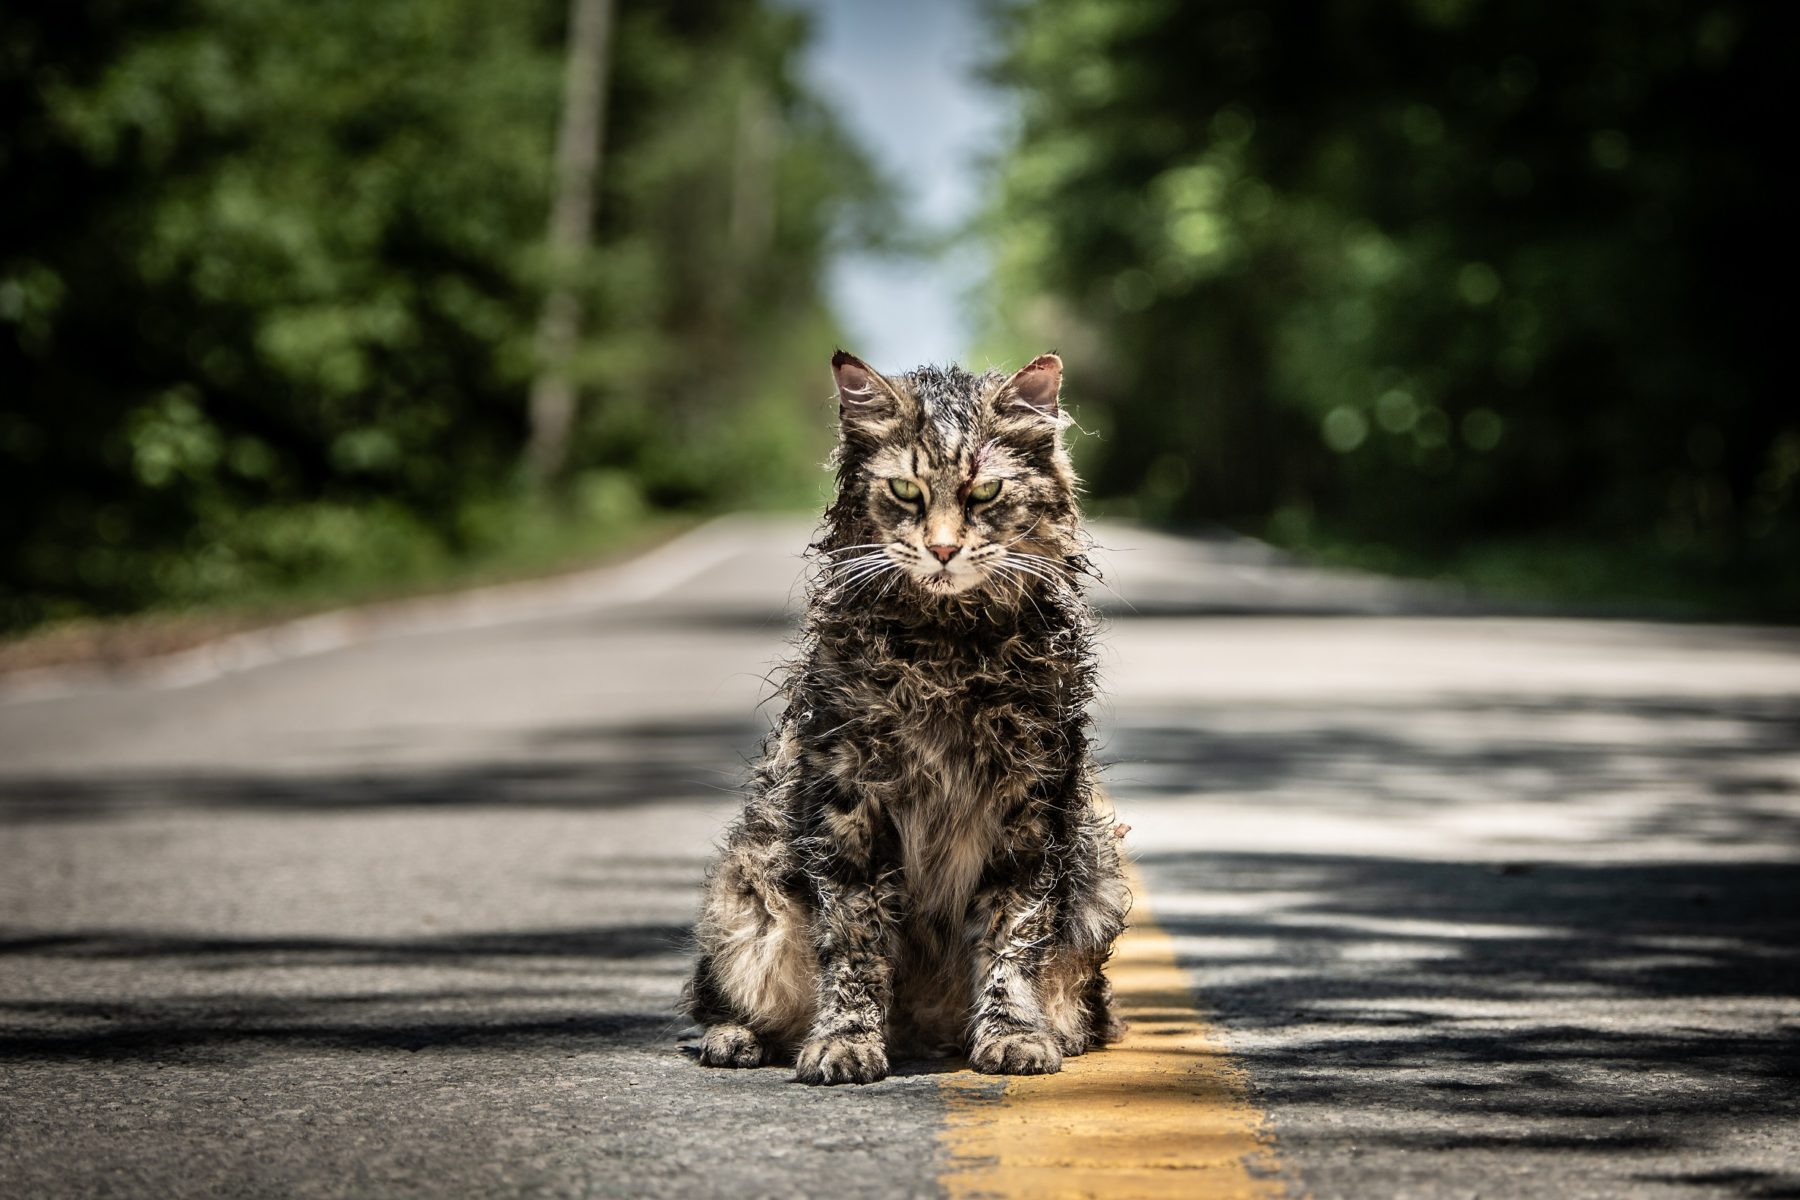 Paramount Releasing 'Pet Sematary' in 4DX Theaters for Immersive, Multi-Sensory Horror Experience - Bloody Disgusting